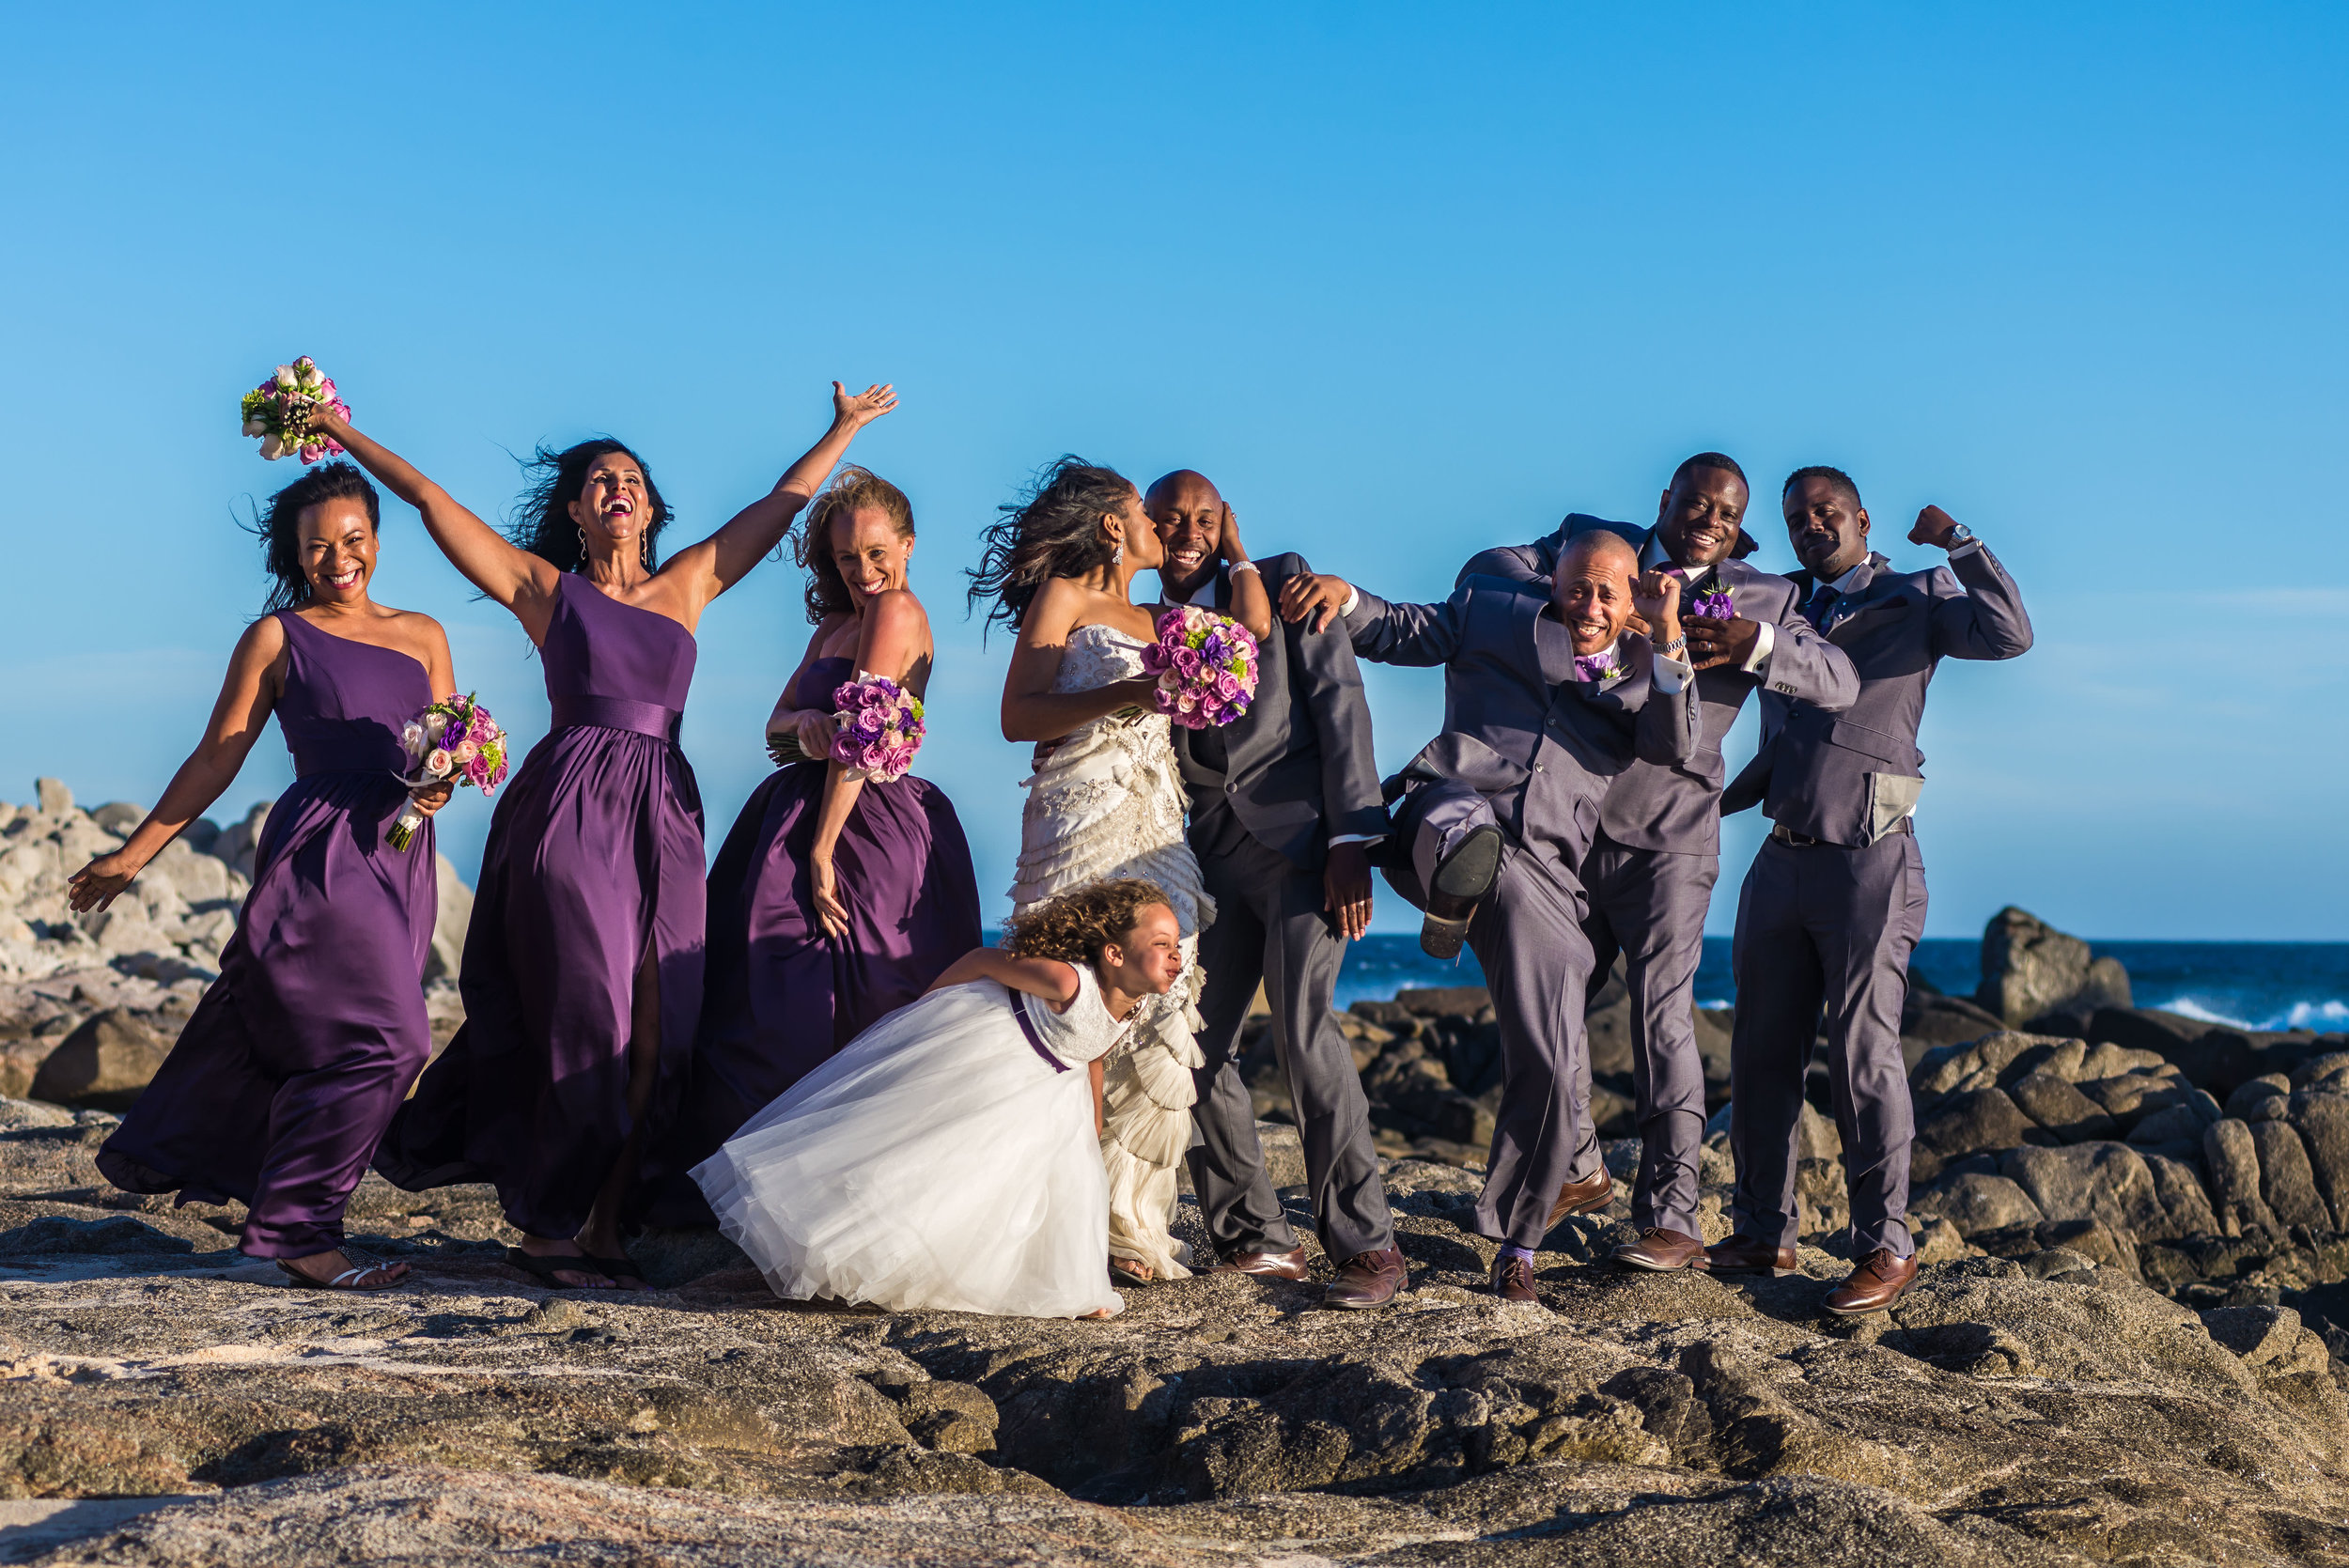 Bridal partyposing on the rocks during their photosession with talented GVphotographer